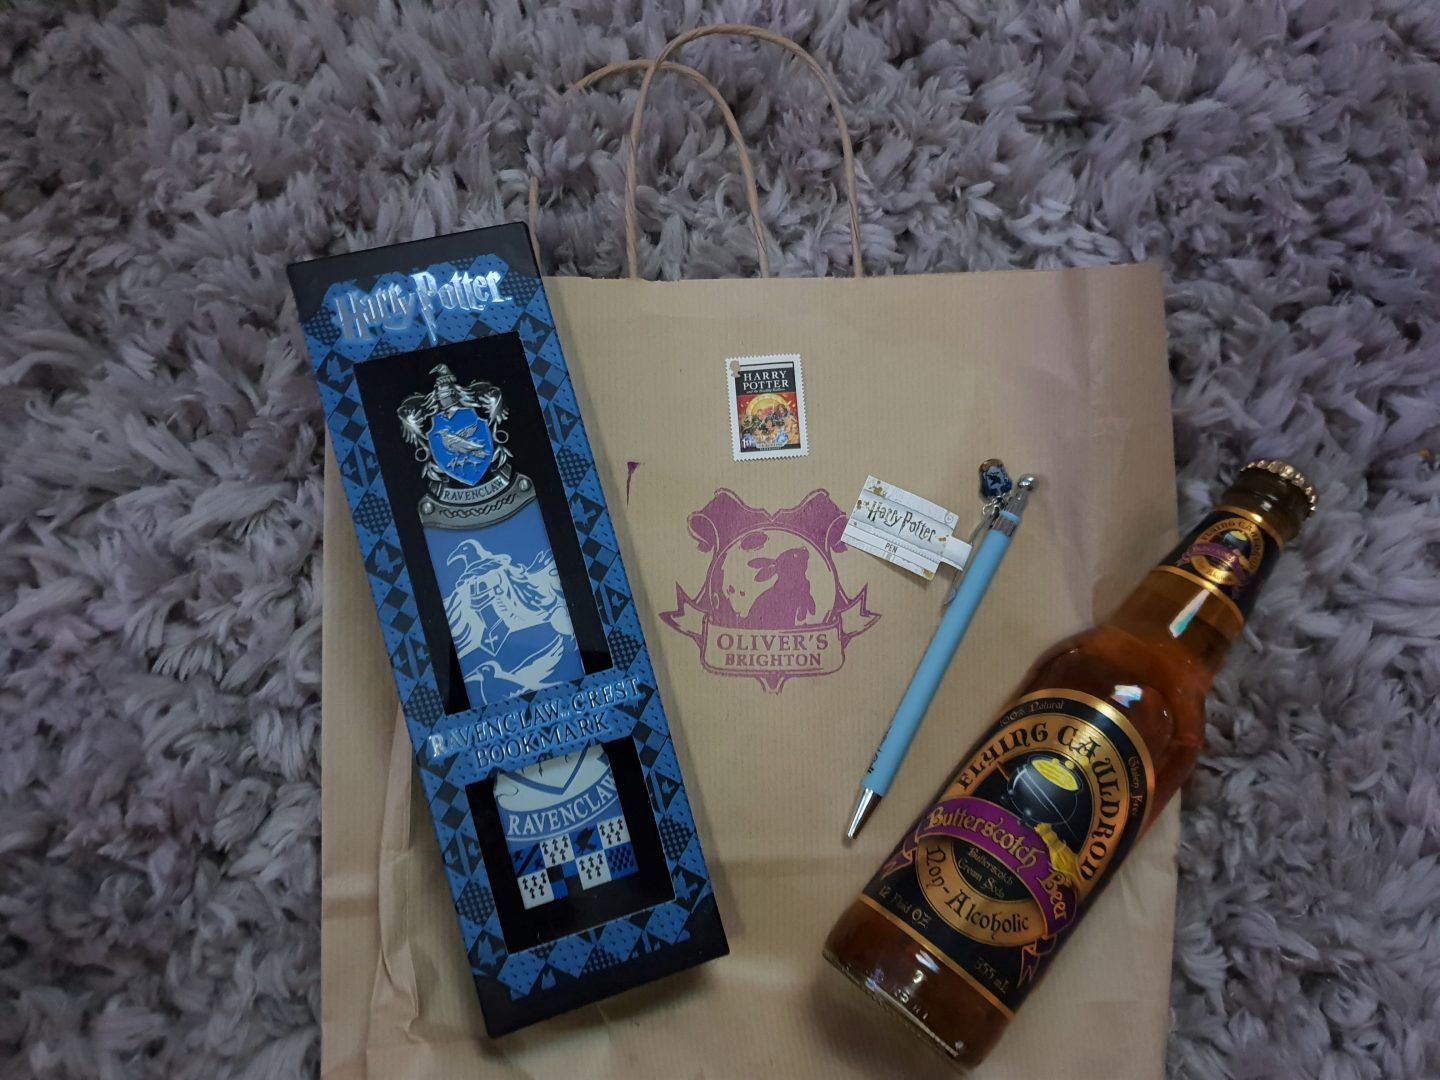 Ravenclaw bookmark, Ravenclaw pen, Butterscotch Beer and Harry Potter 2005 stamp from Oliver's Brighton